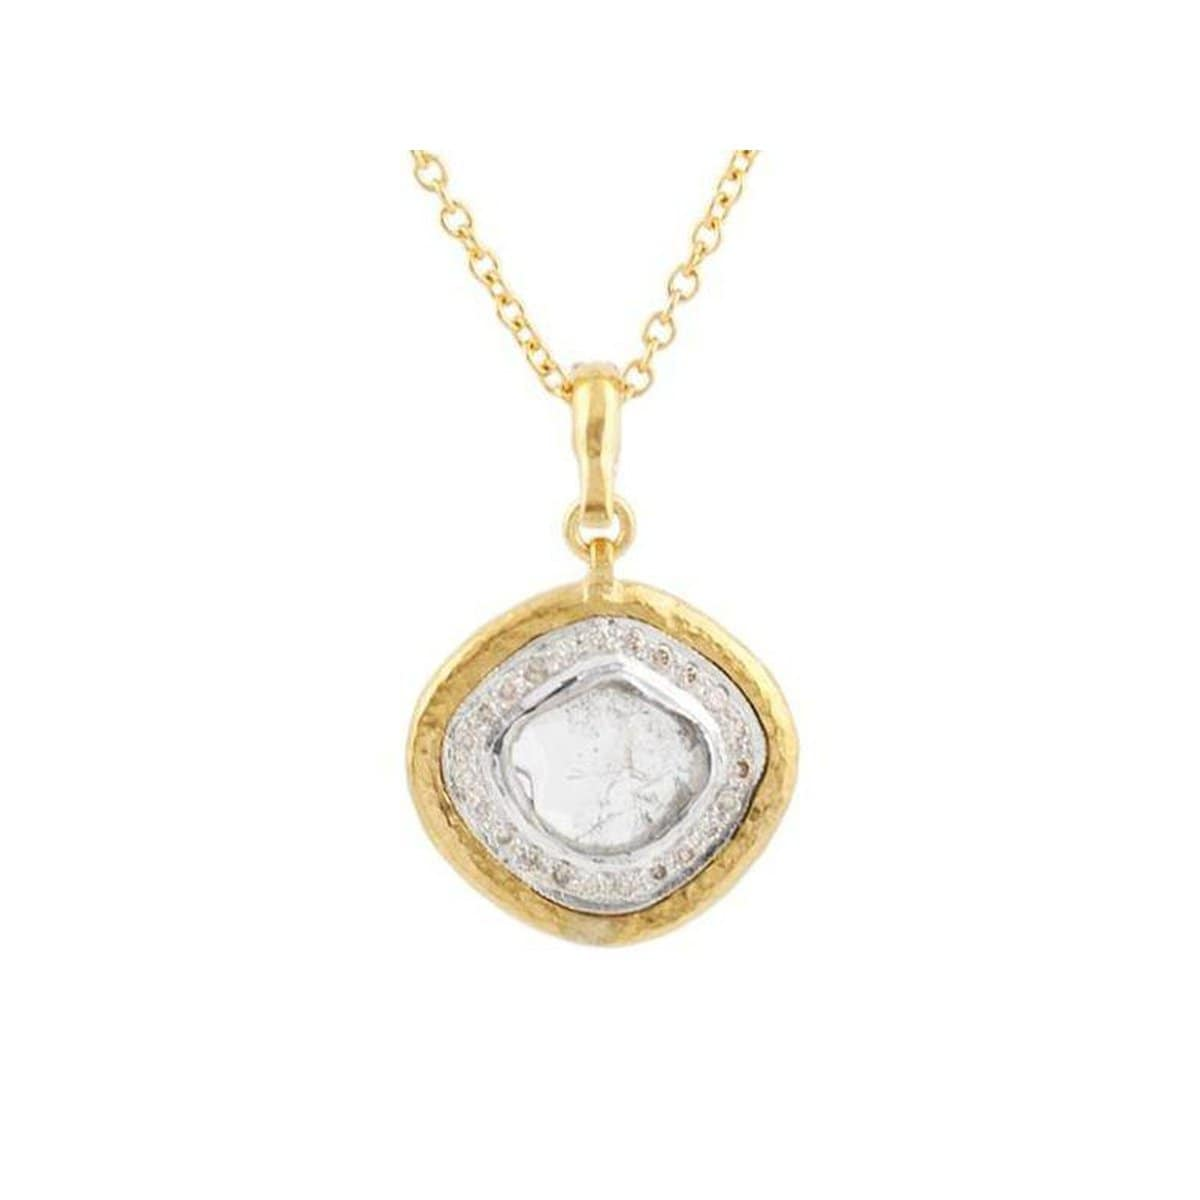 Elements 24K Gold Diamond Necklace - N-U20660-DI-AMR